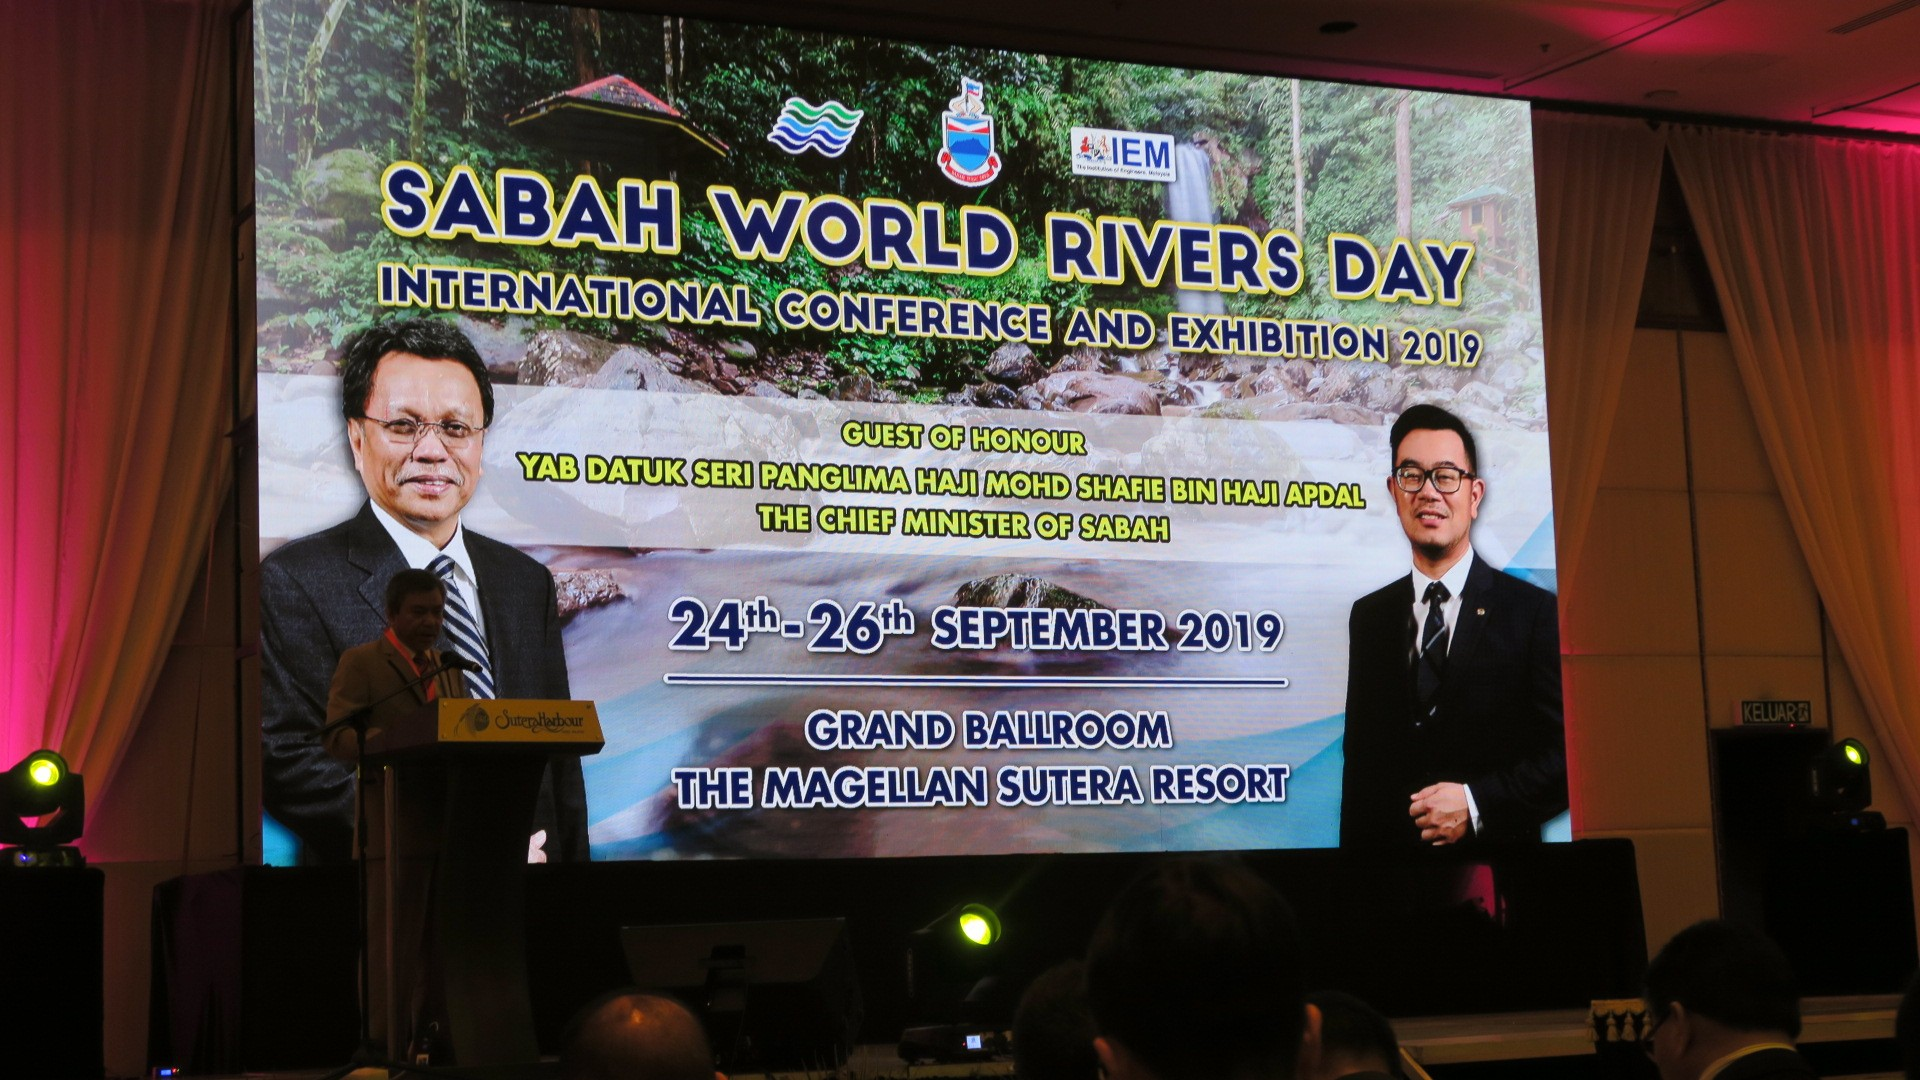 Sabah World Rivers Day International Conference and Exhibition.